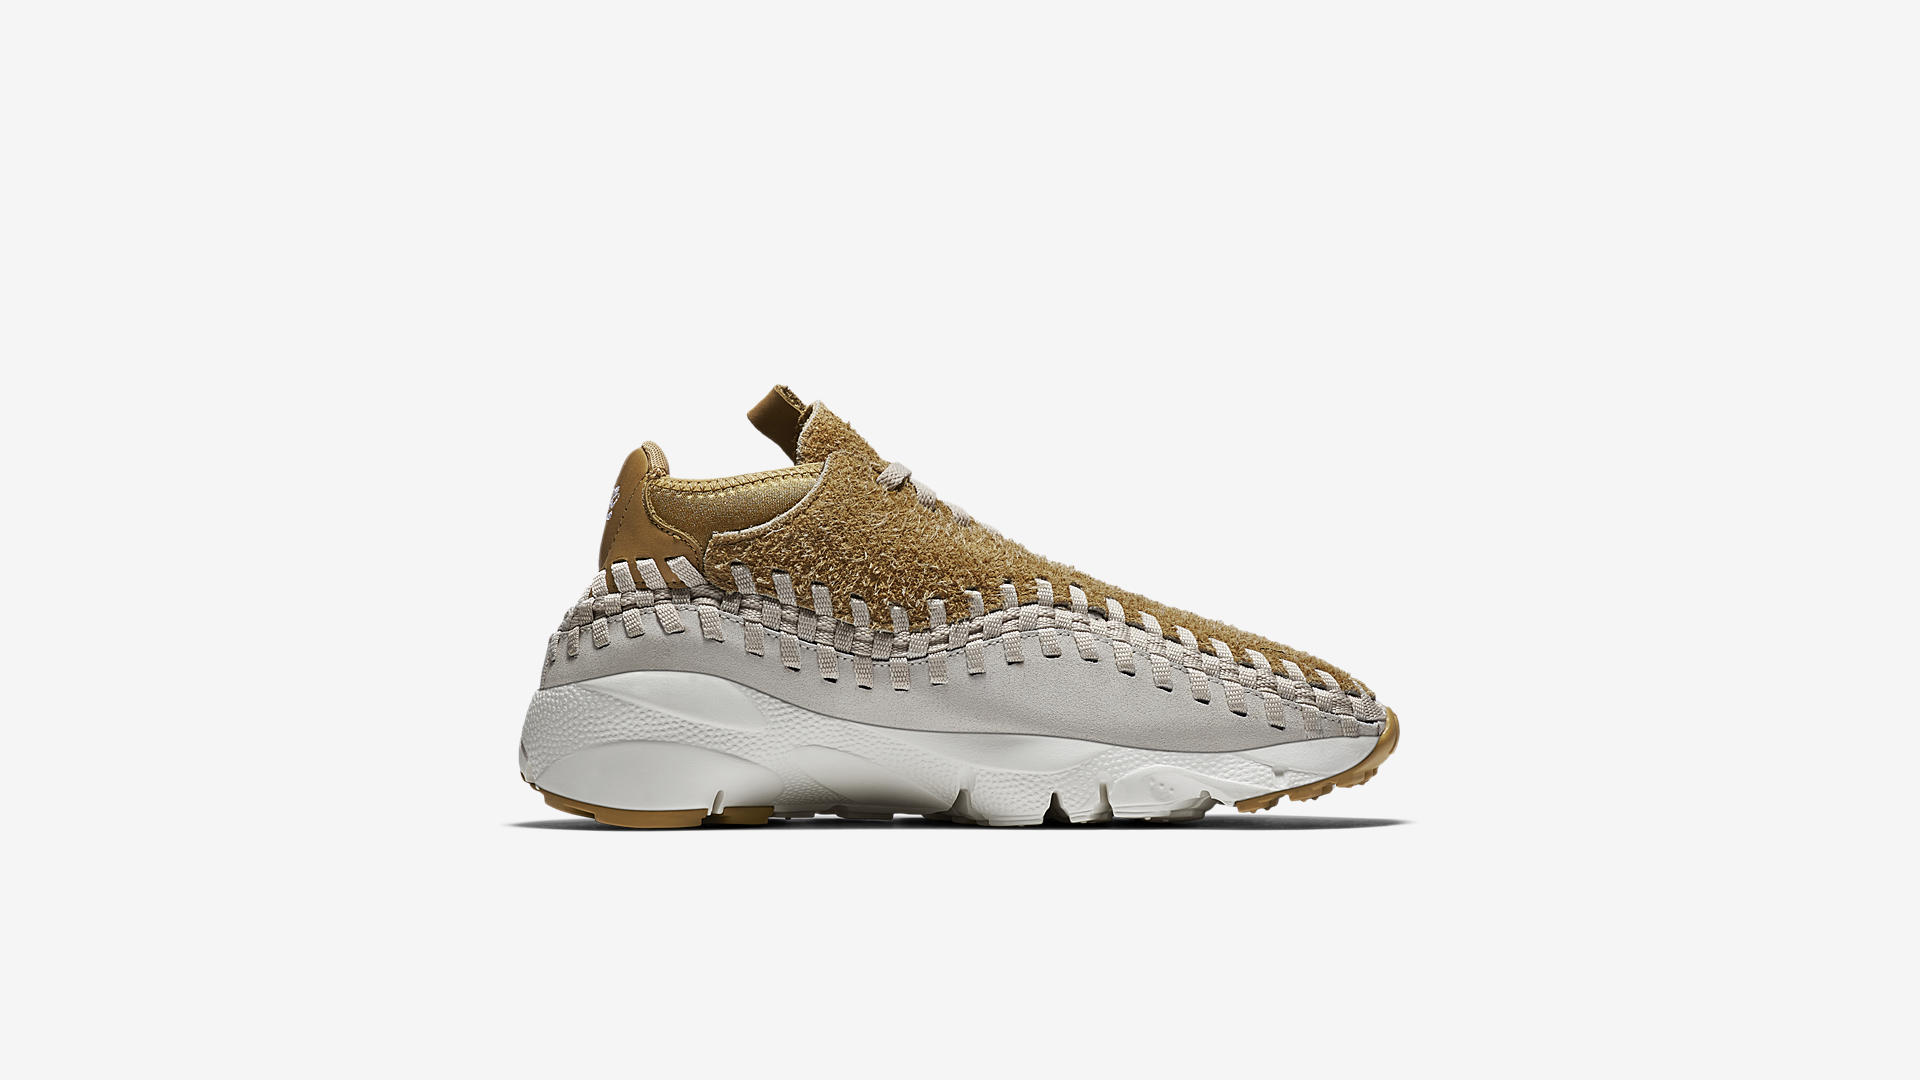 Nike Air Footscape Woven Chukka Flat Gold 913929 700 4